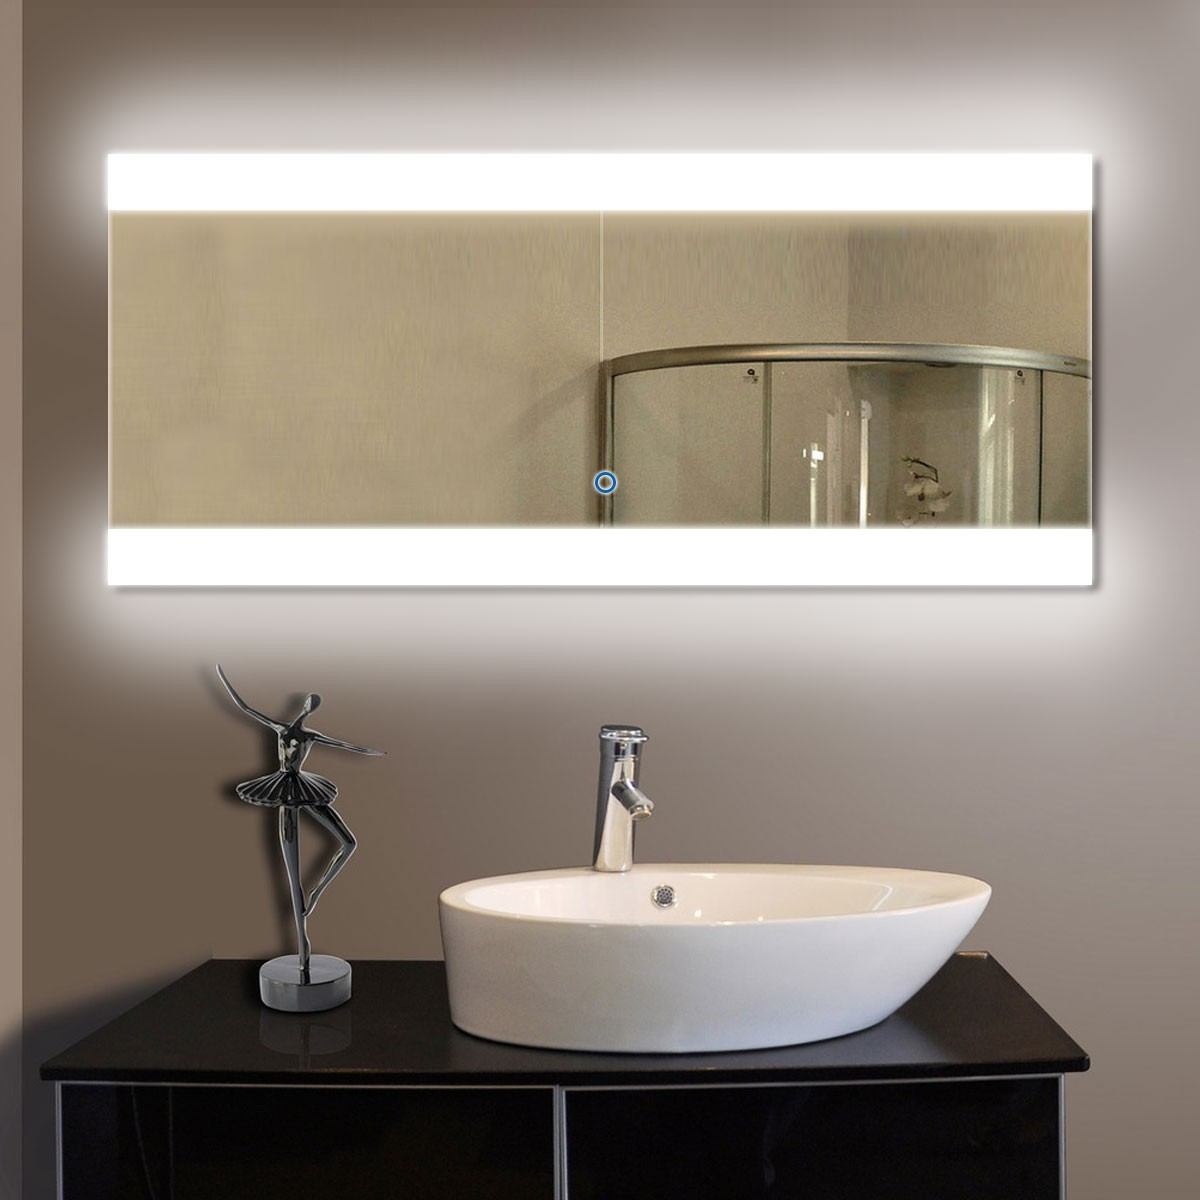 80 x 36 In Horizontal LED Bathroom Mirror, Touch Button (DK-OD-T03-2)